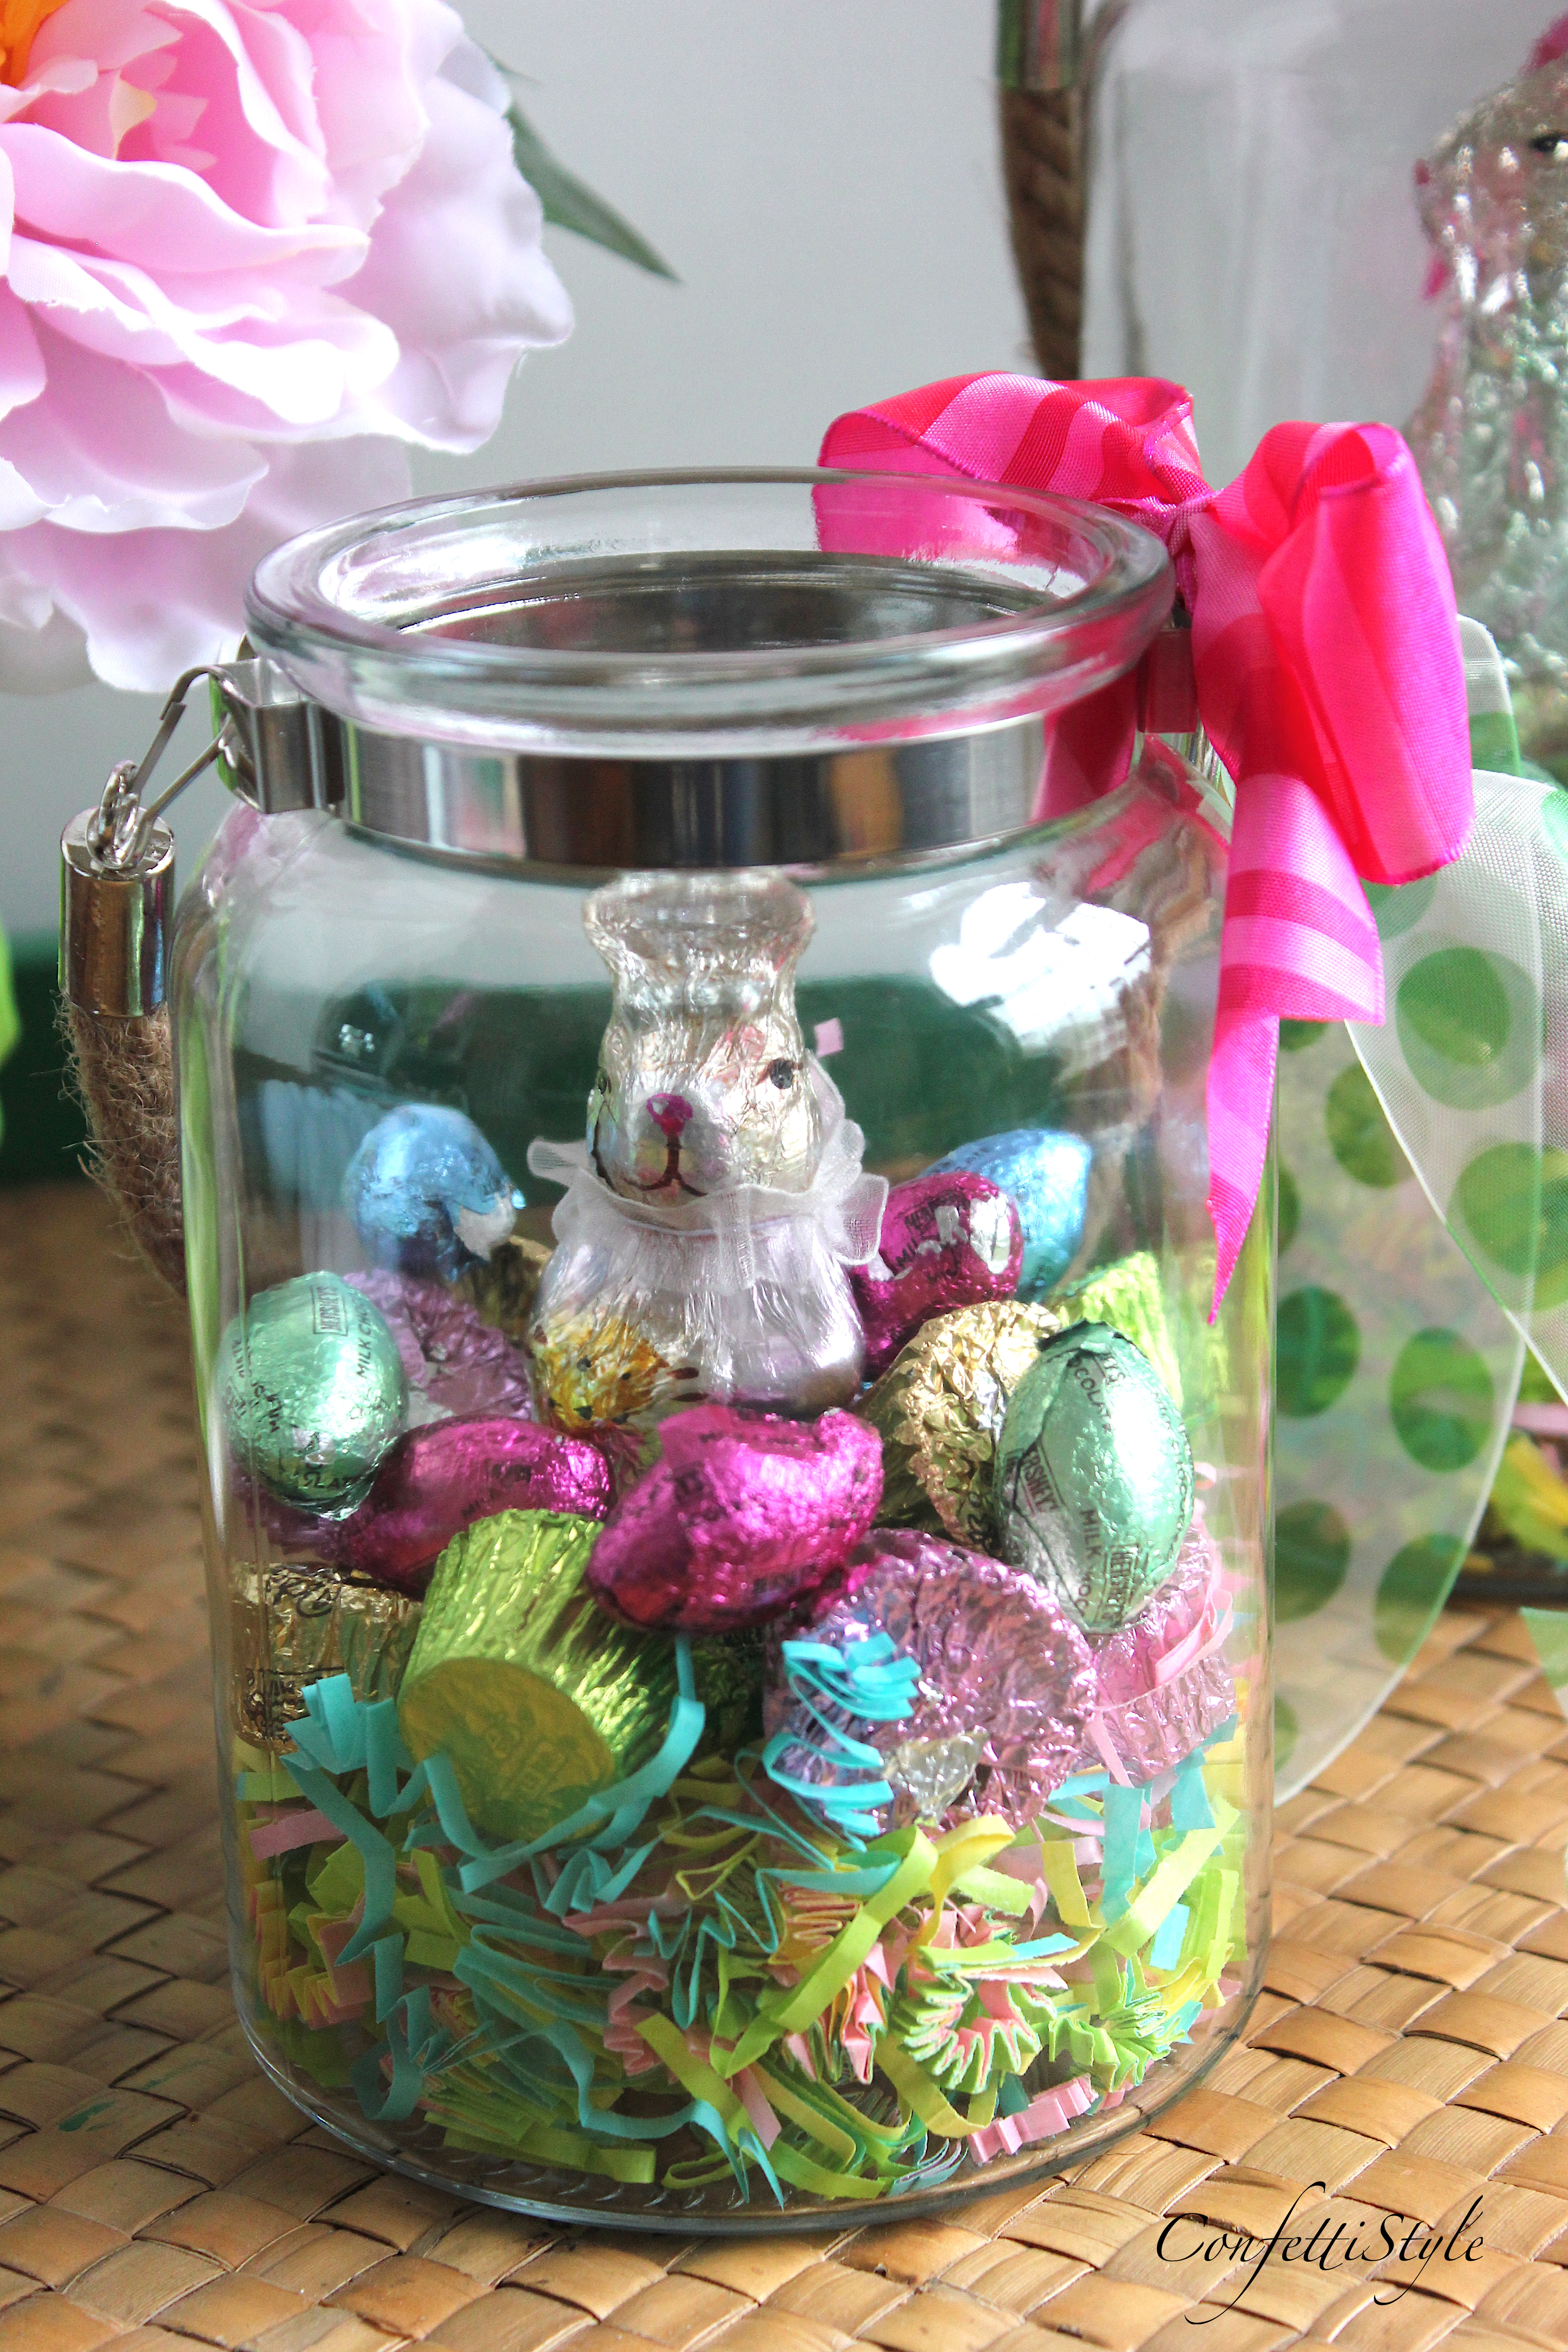 Diy easter candy jars easter gift idea confettistyle diy easter candy jar by confettistyle negle Gallery